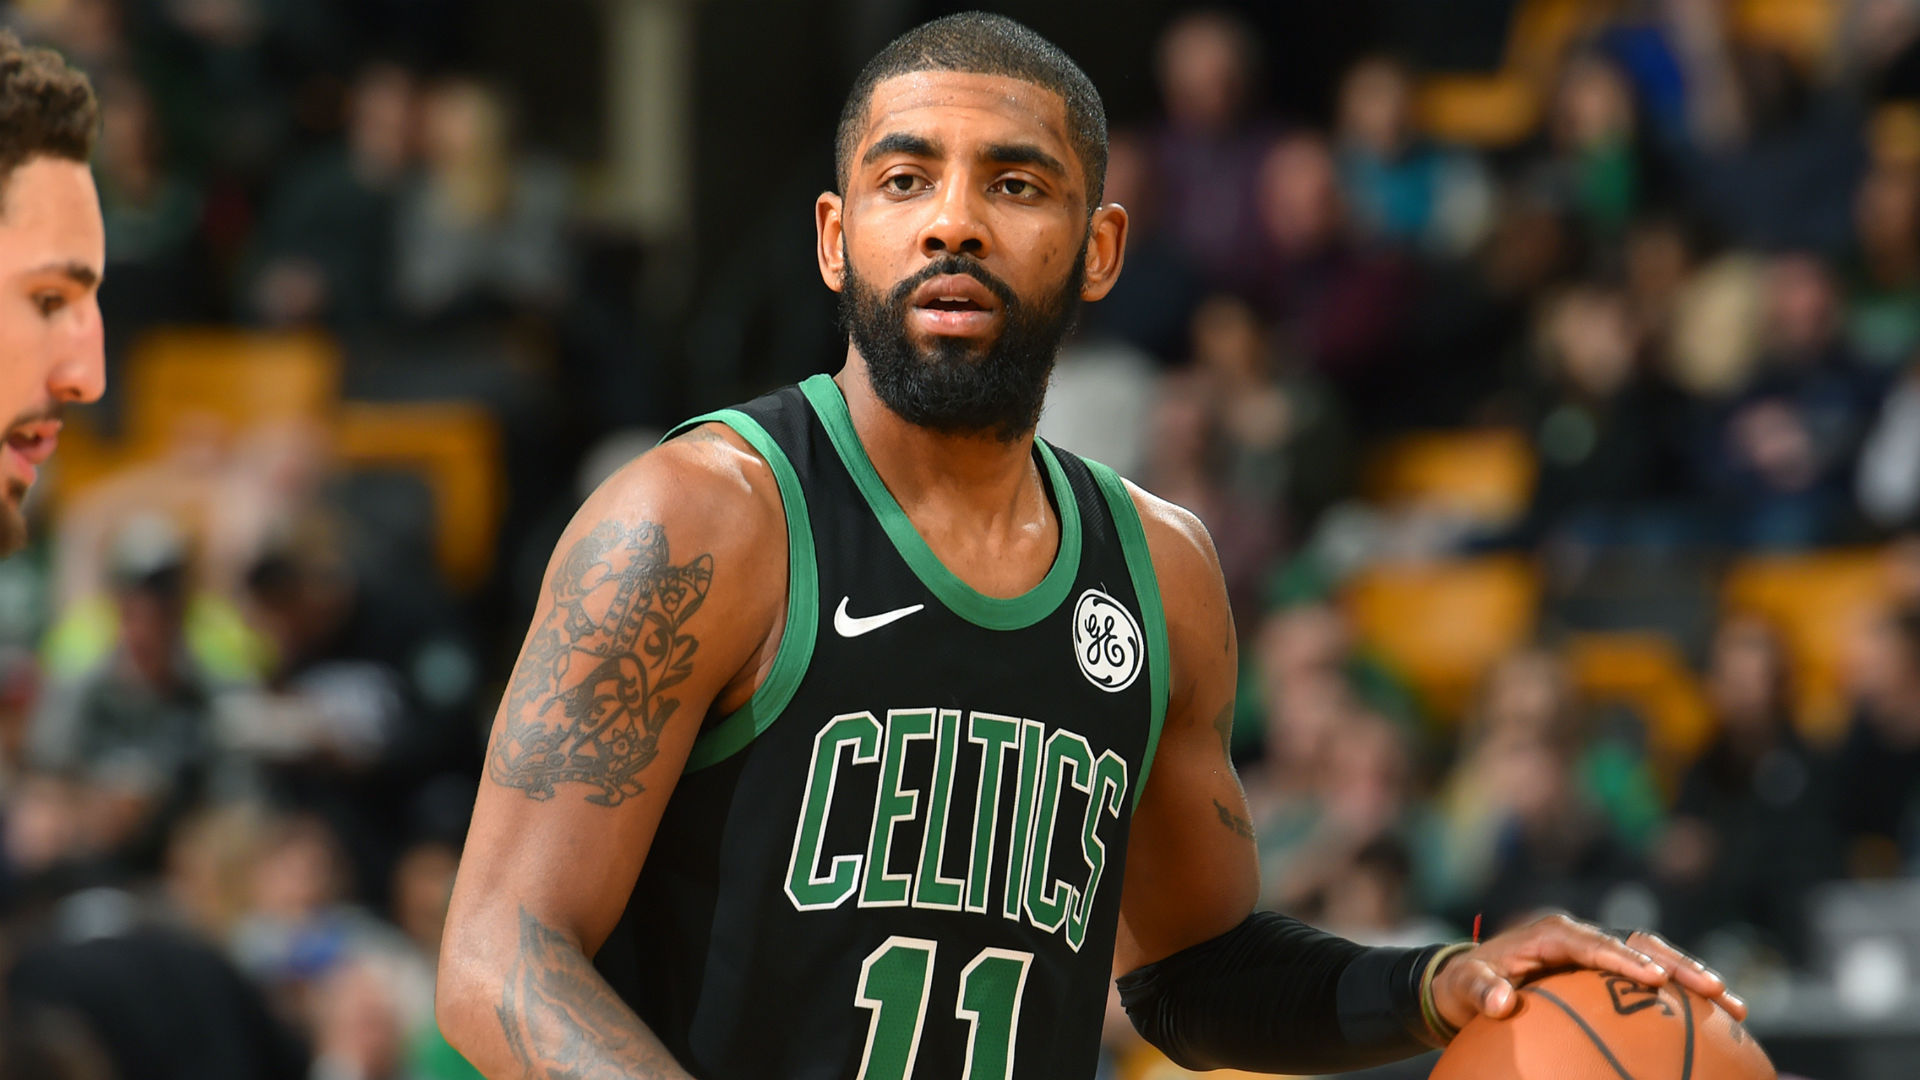 The simple possession shows a new side of Kyrie Irving ...Kyrie Irving